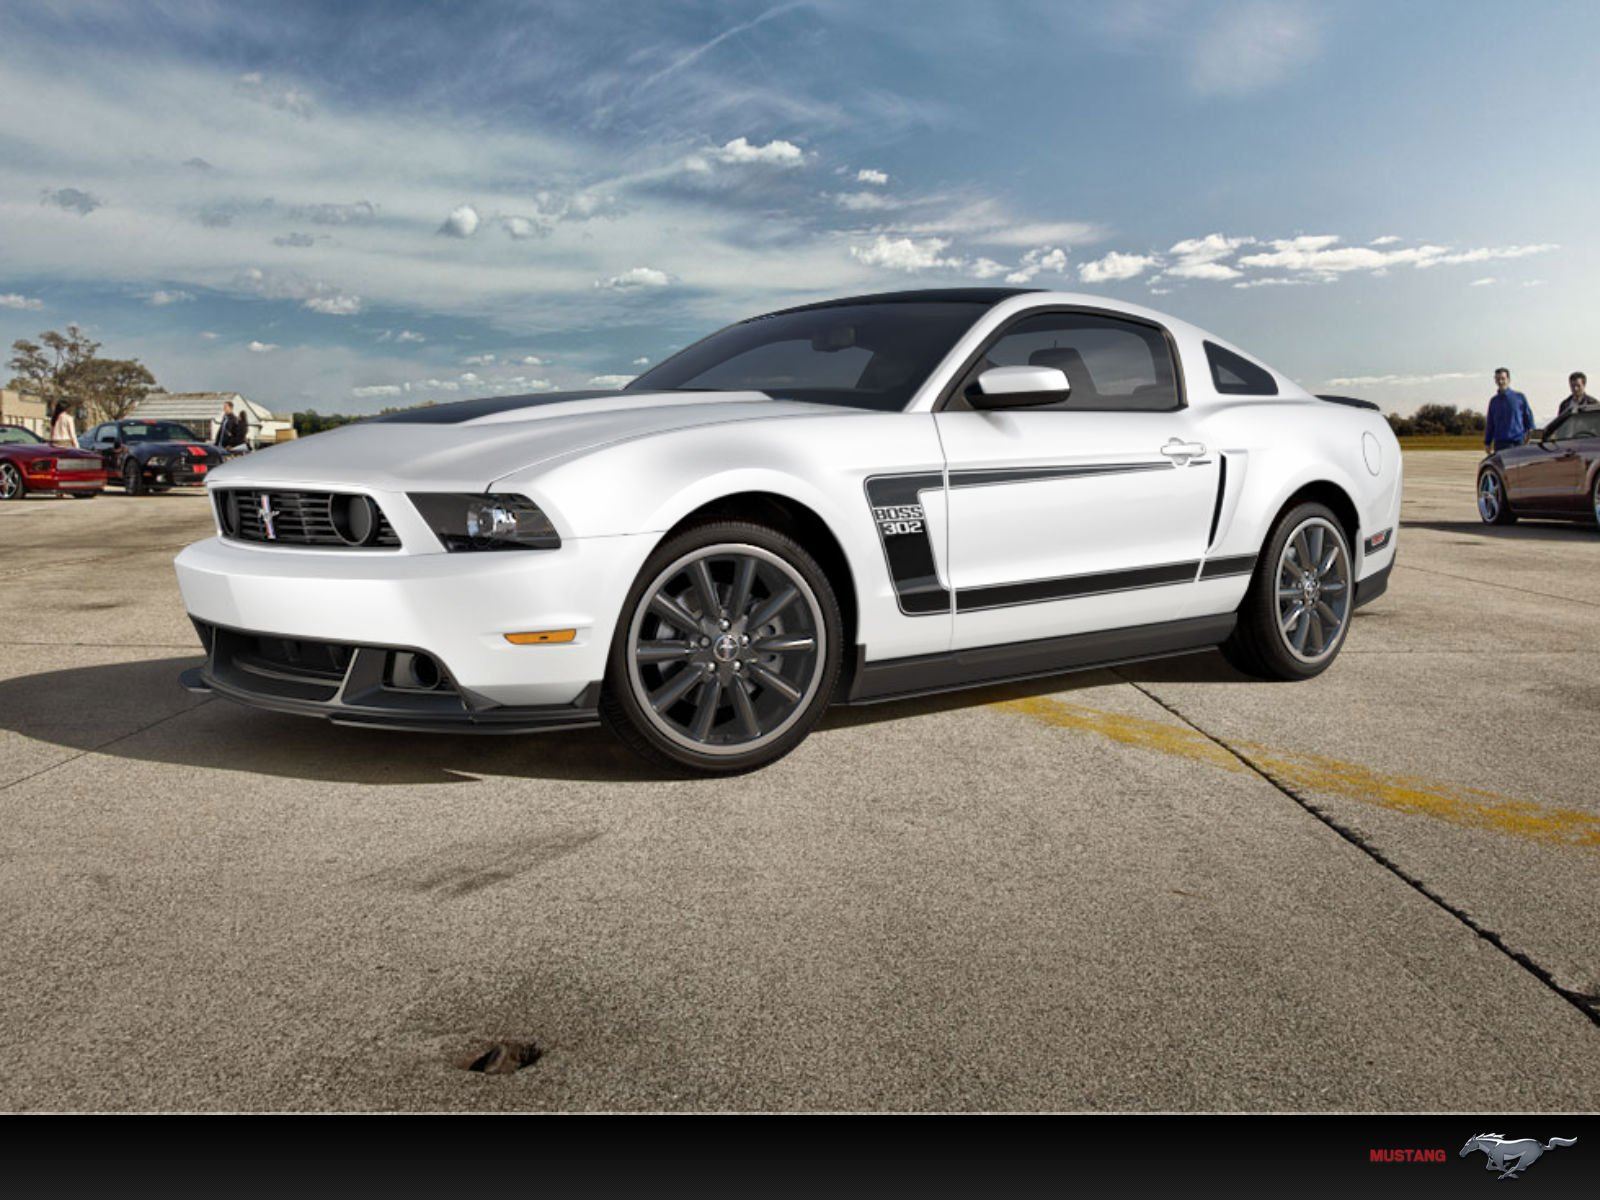 Is this what the 2013 Boss 302 will look like? - Ford Mustang Forum